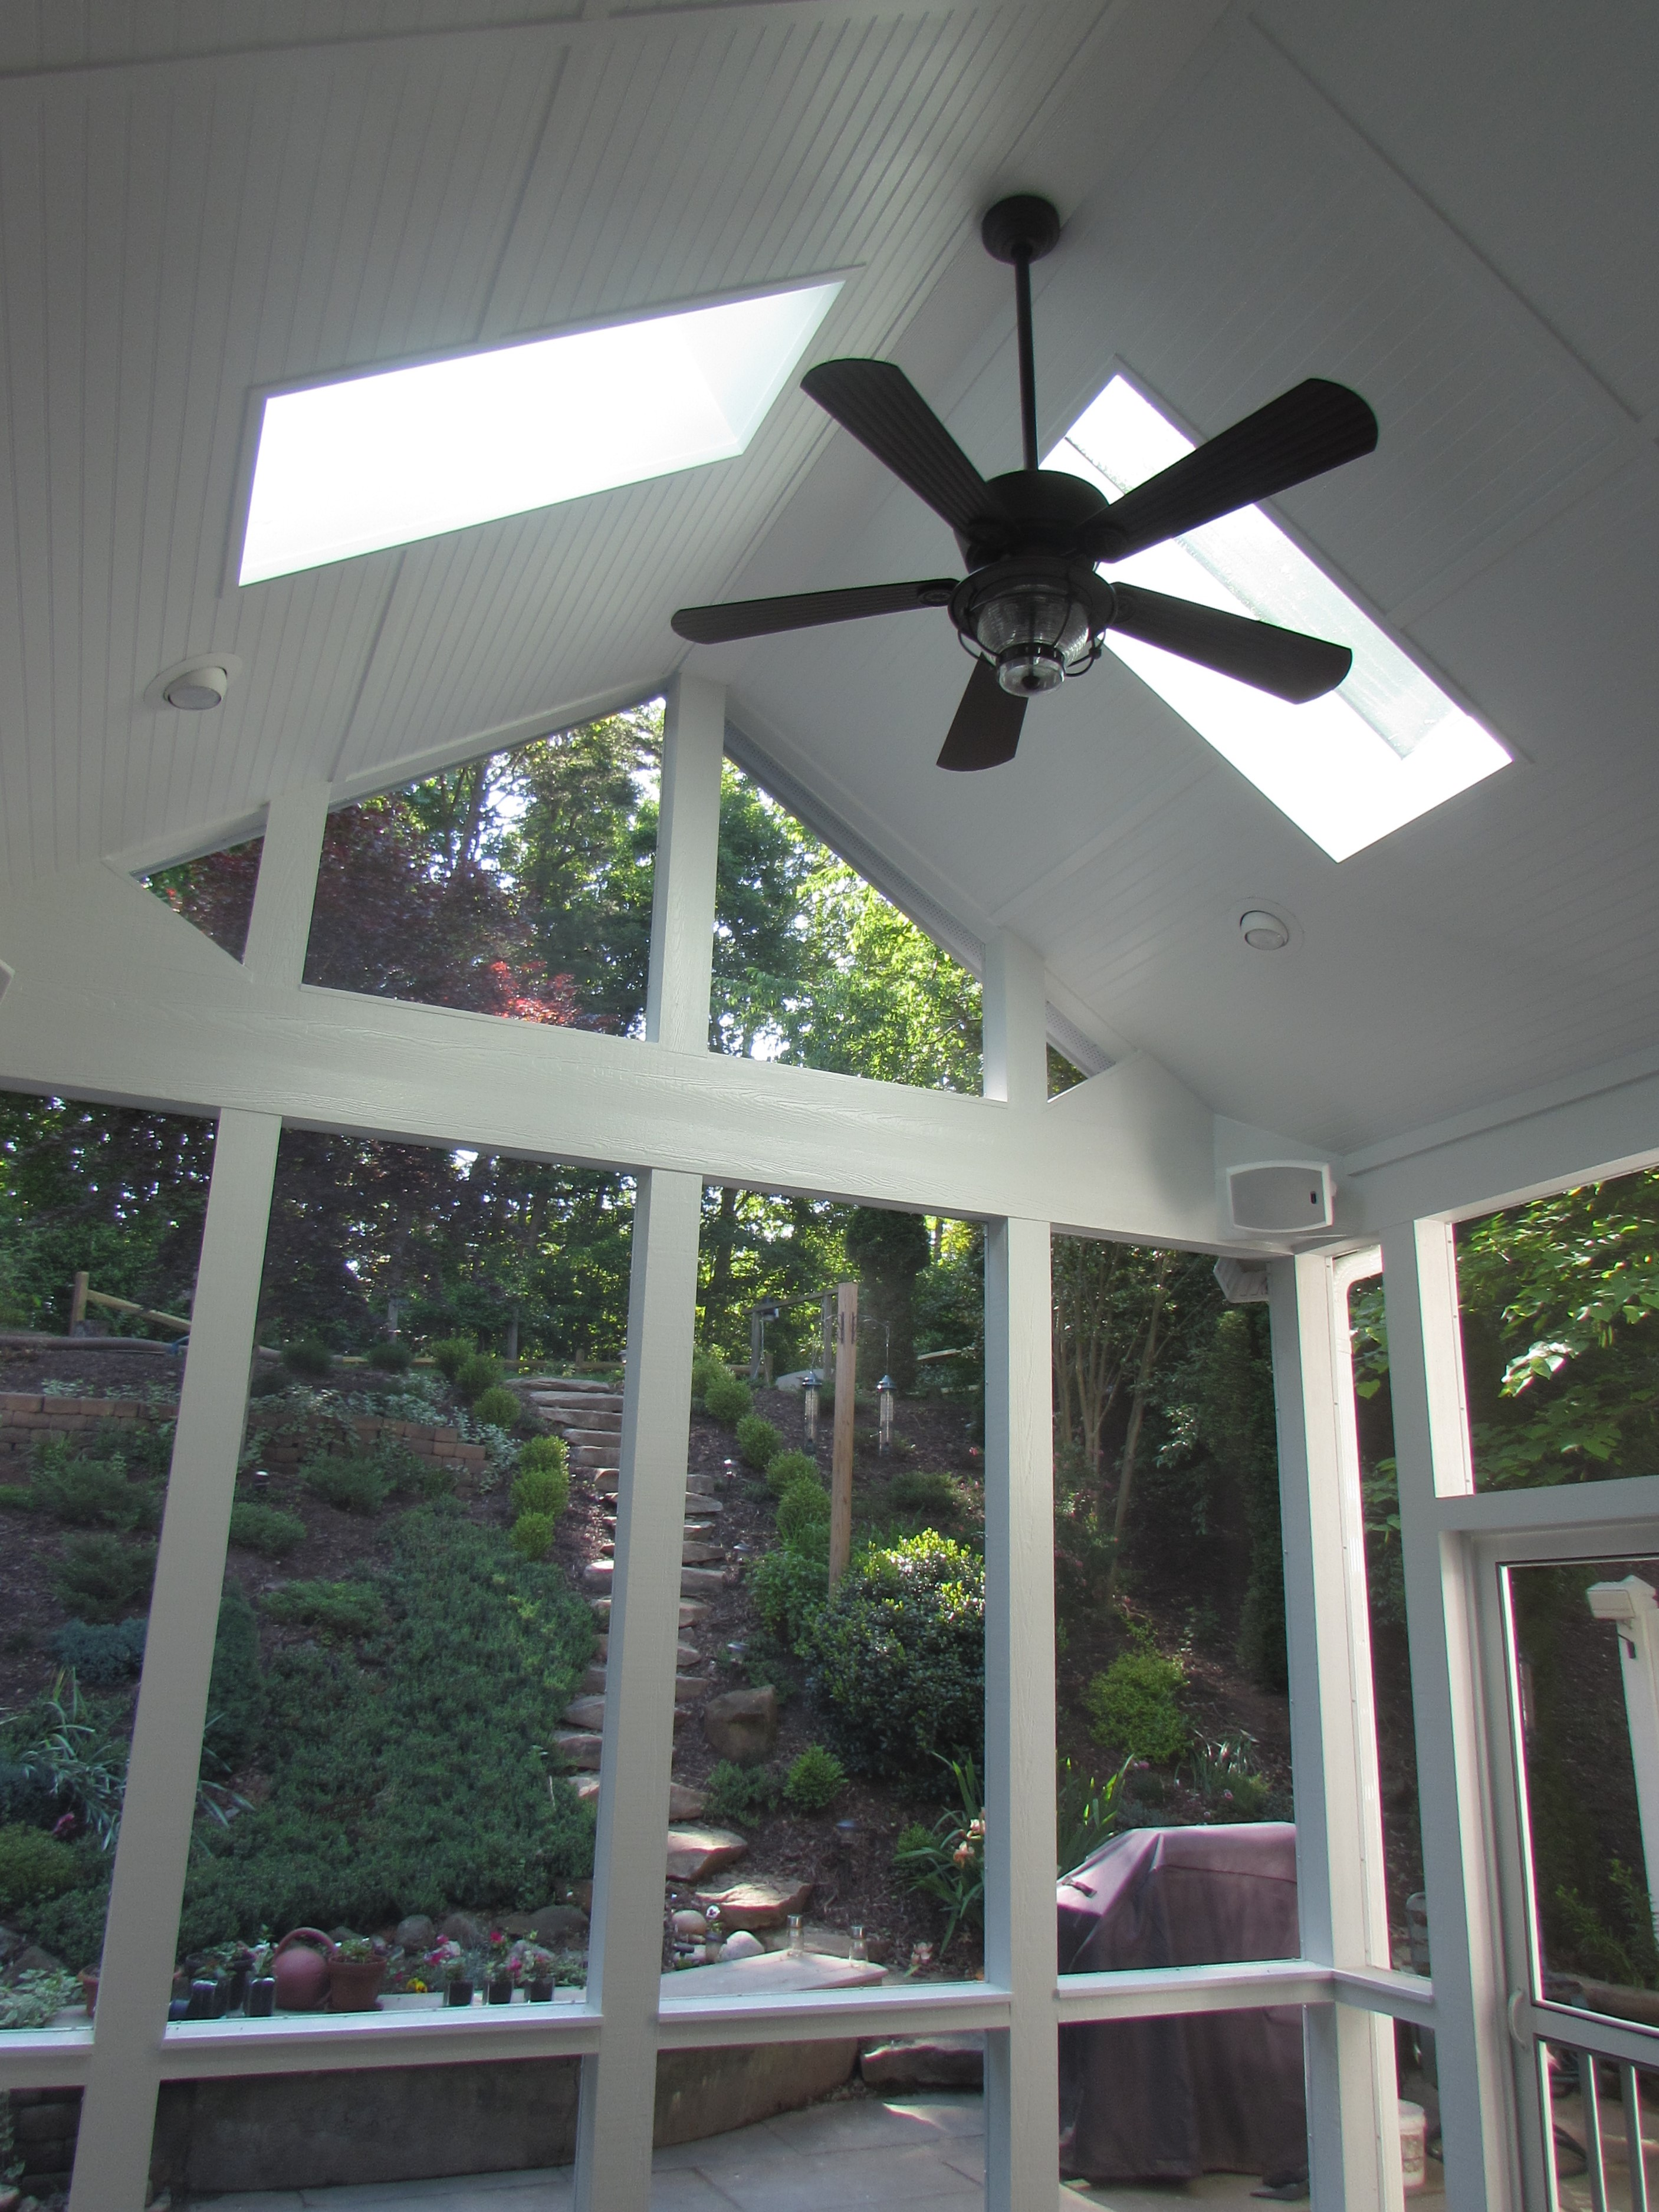 Gable Roof with Ceiling Fan